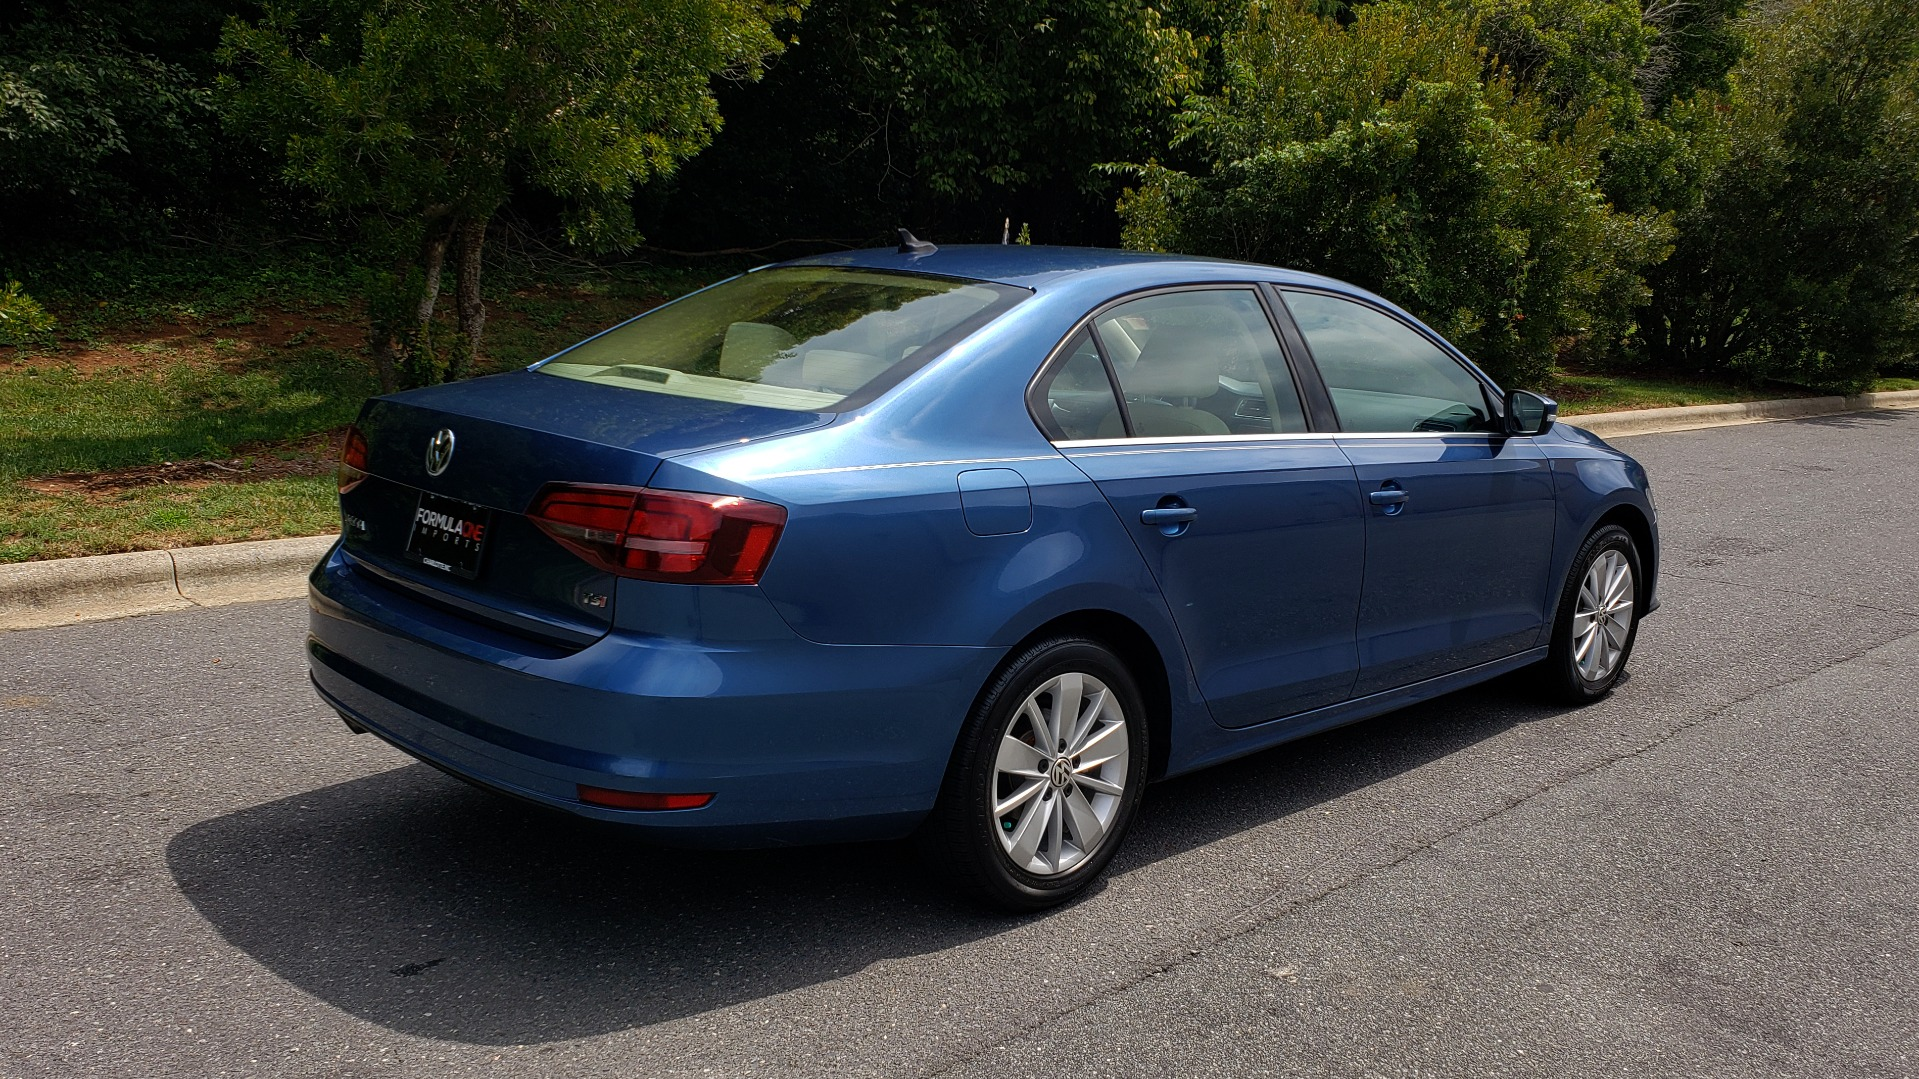 Used 2016 Volkswagen JETTA SEDAN 1.4T SE W/ CONNECTIVITY / 6-SPD AUTO / HTD STS / SUNROOF / REARVIEW for sale Sold at Formula Imports in Charlotte NC 28227 6